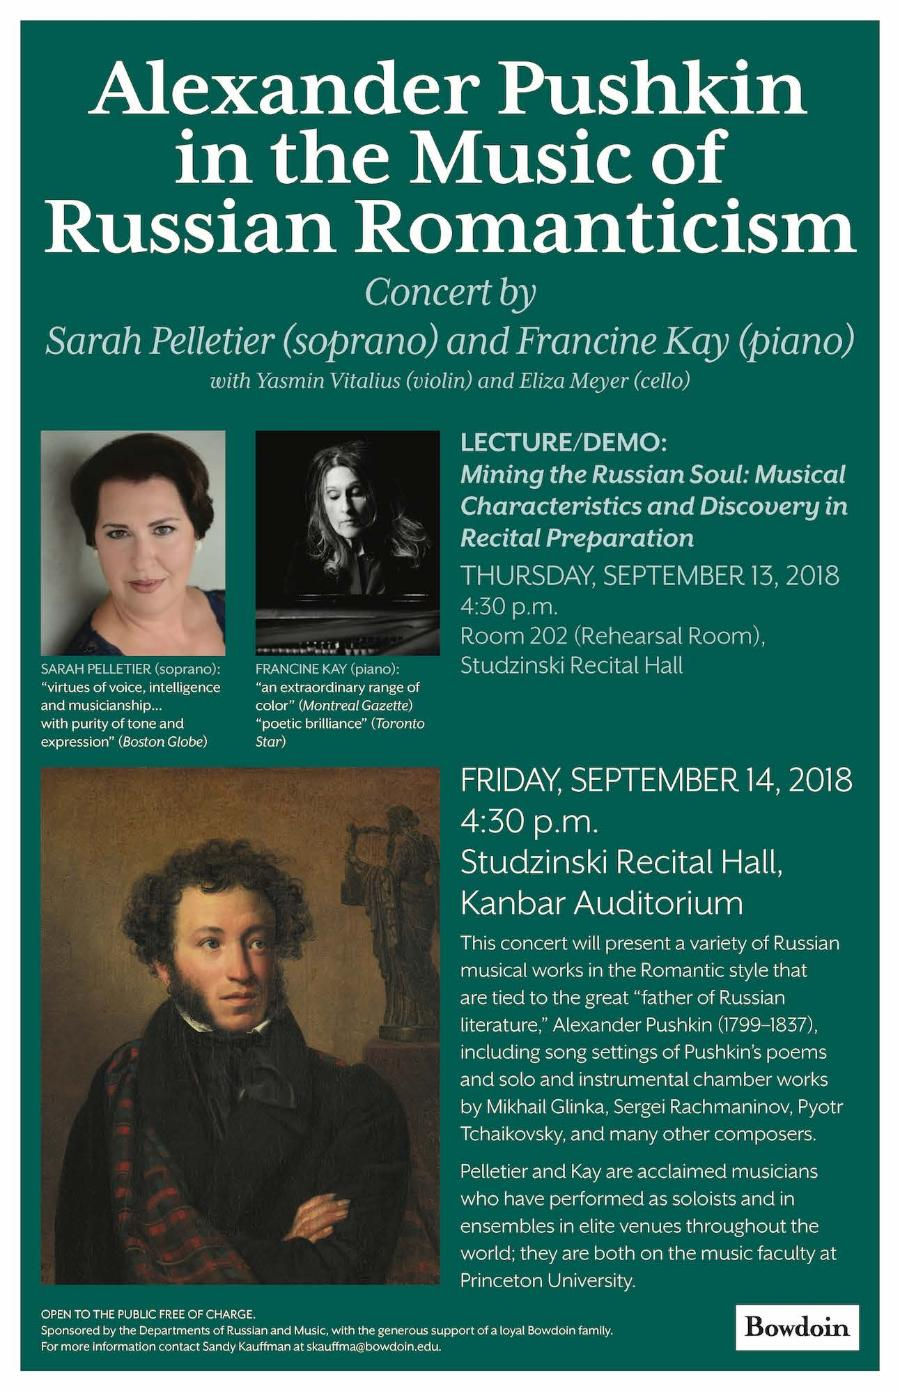 Alexander Pushkin in the Music of Russian Romanticism, with Soprano Sarah Pelletier and Francine Kay on Piano